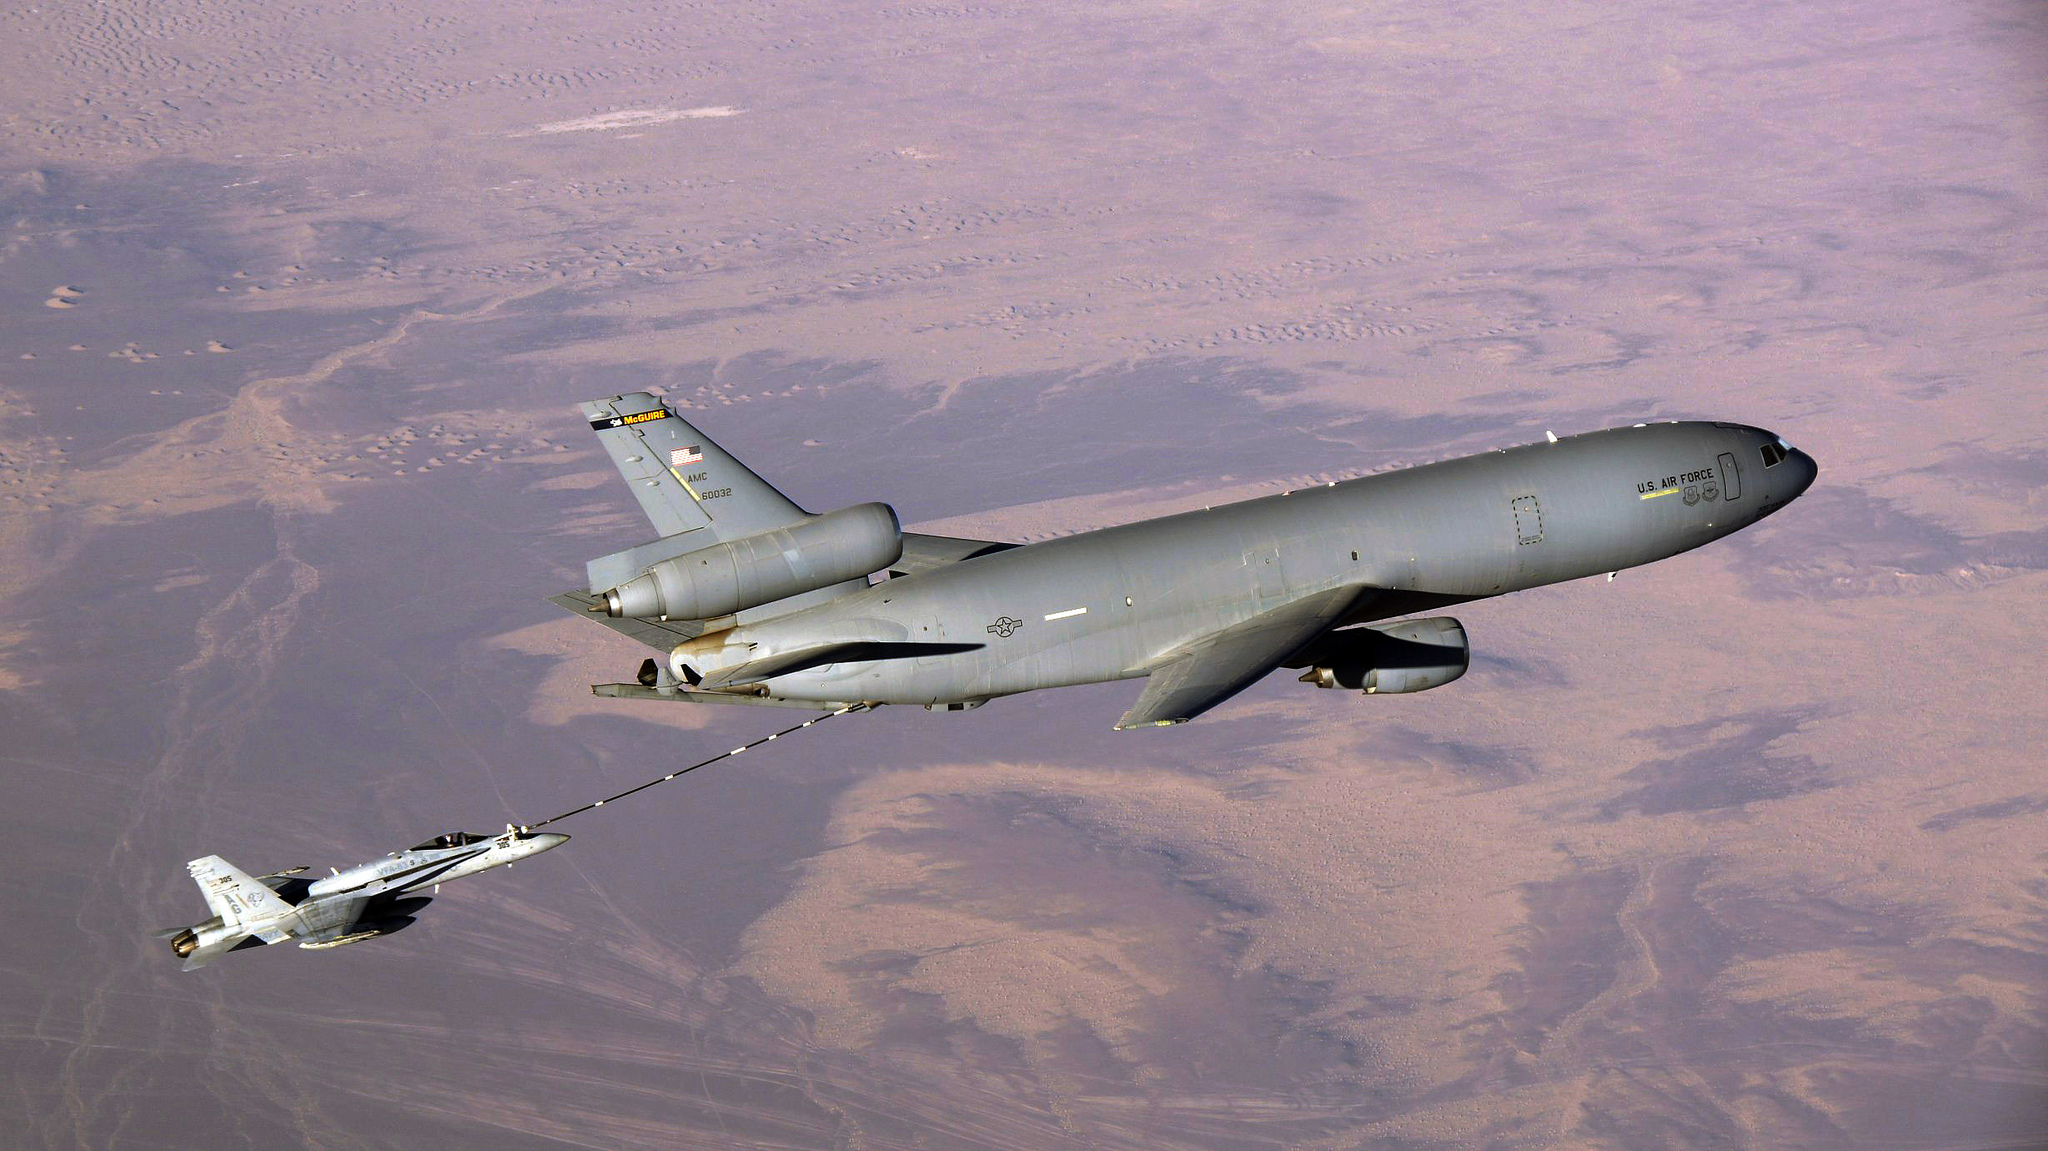 Navy aviators fly combat missions., Official U.S. Navy Page October 4, 2012